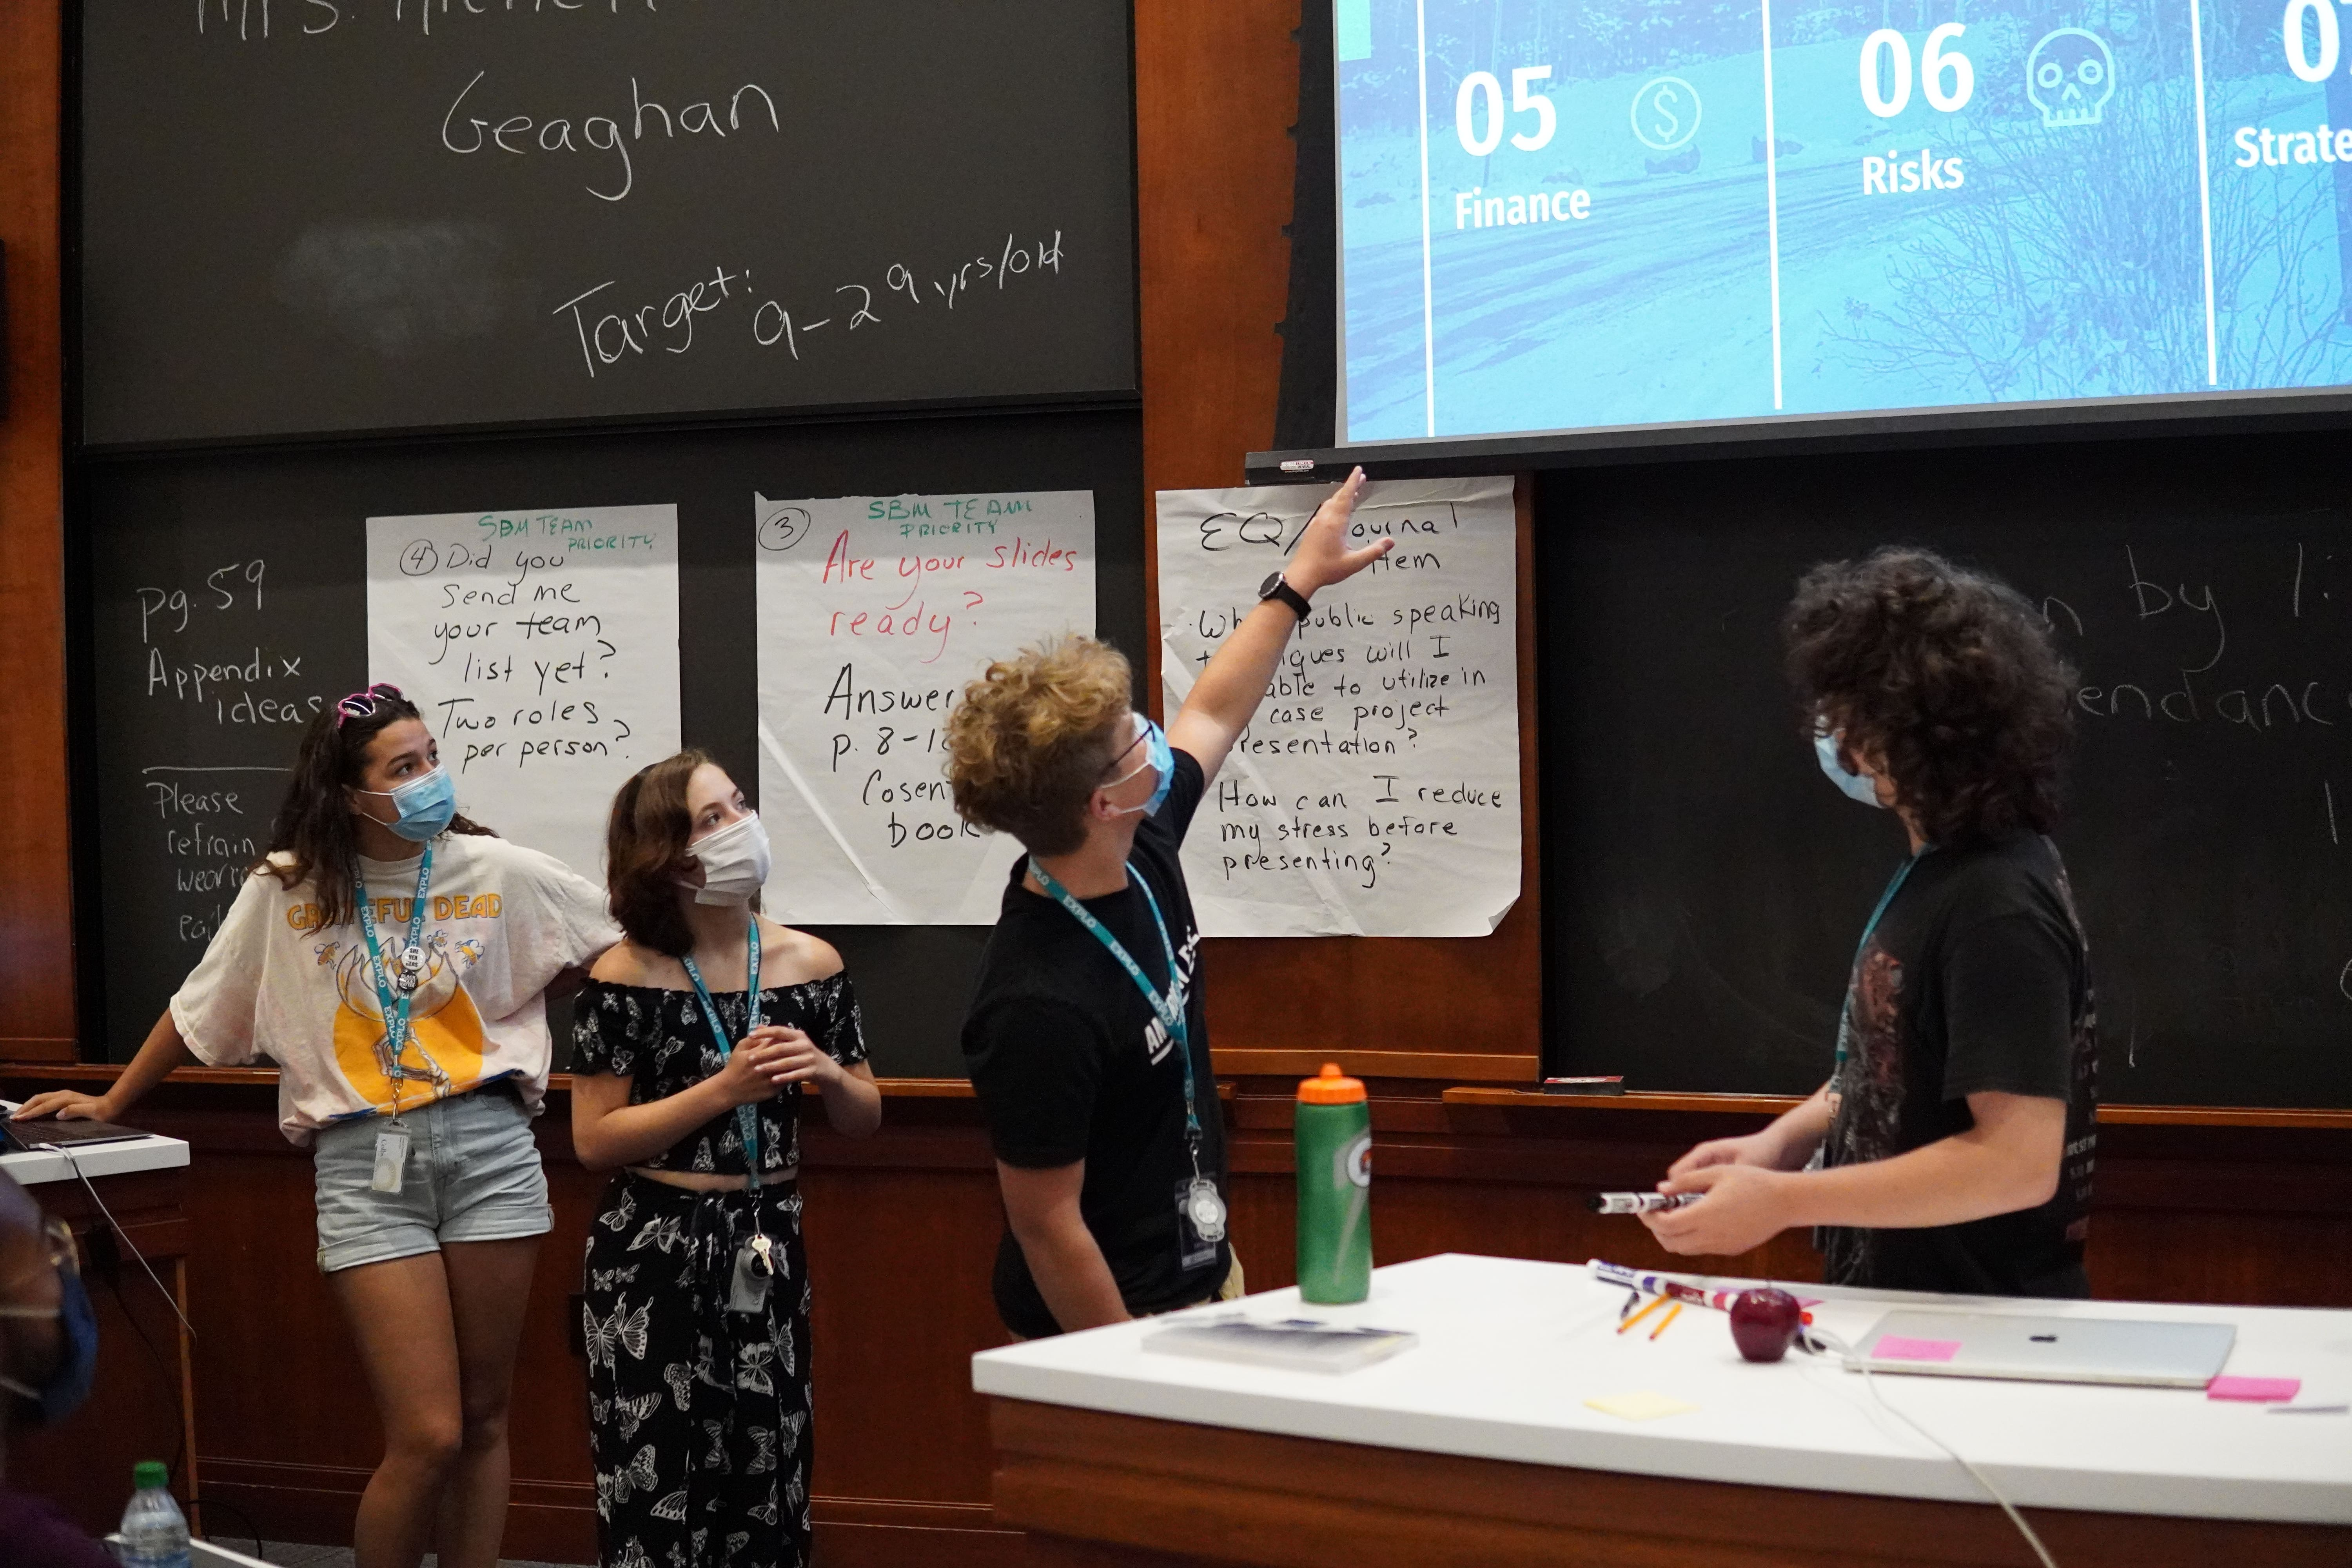 Four students stand below a projector screen as they present. One gestures upward toward their presentation, while the others listen.